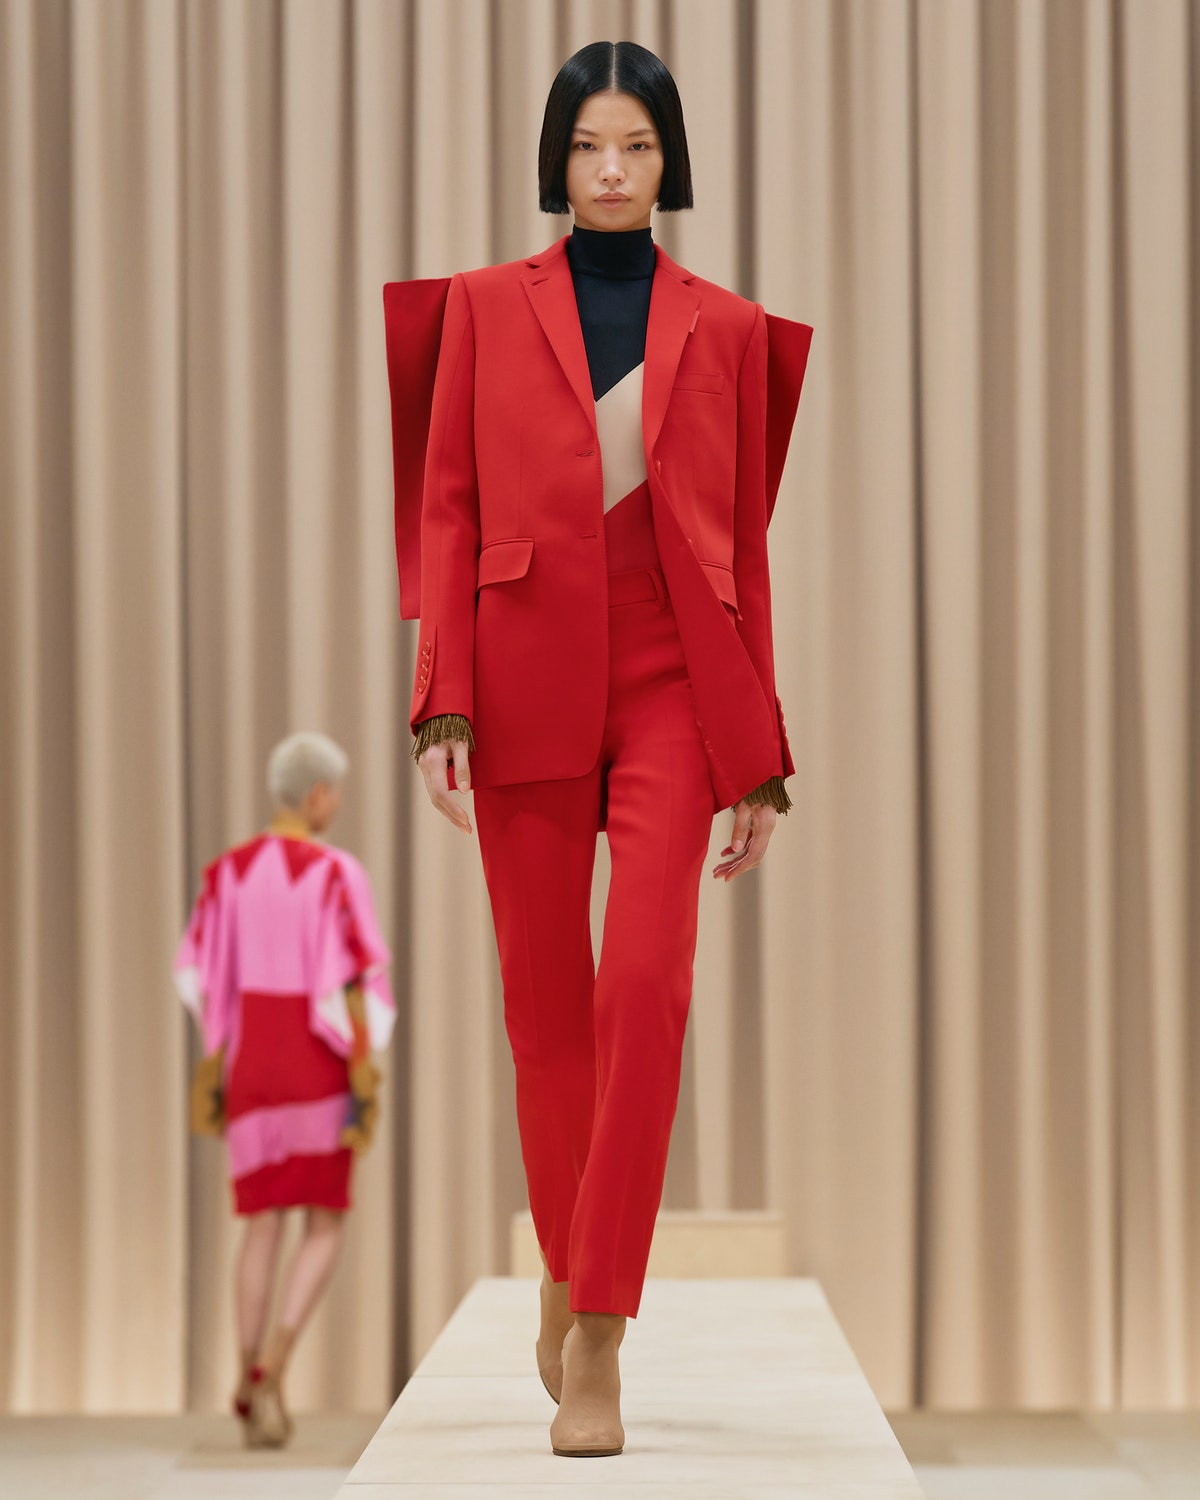 Model walks in Burberry's Fall/Winter 2021 show wearing a red suit.